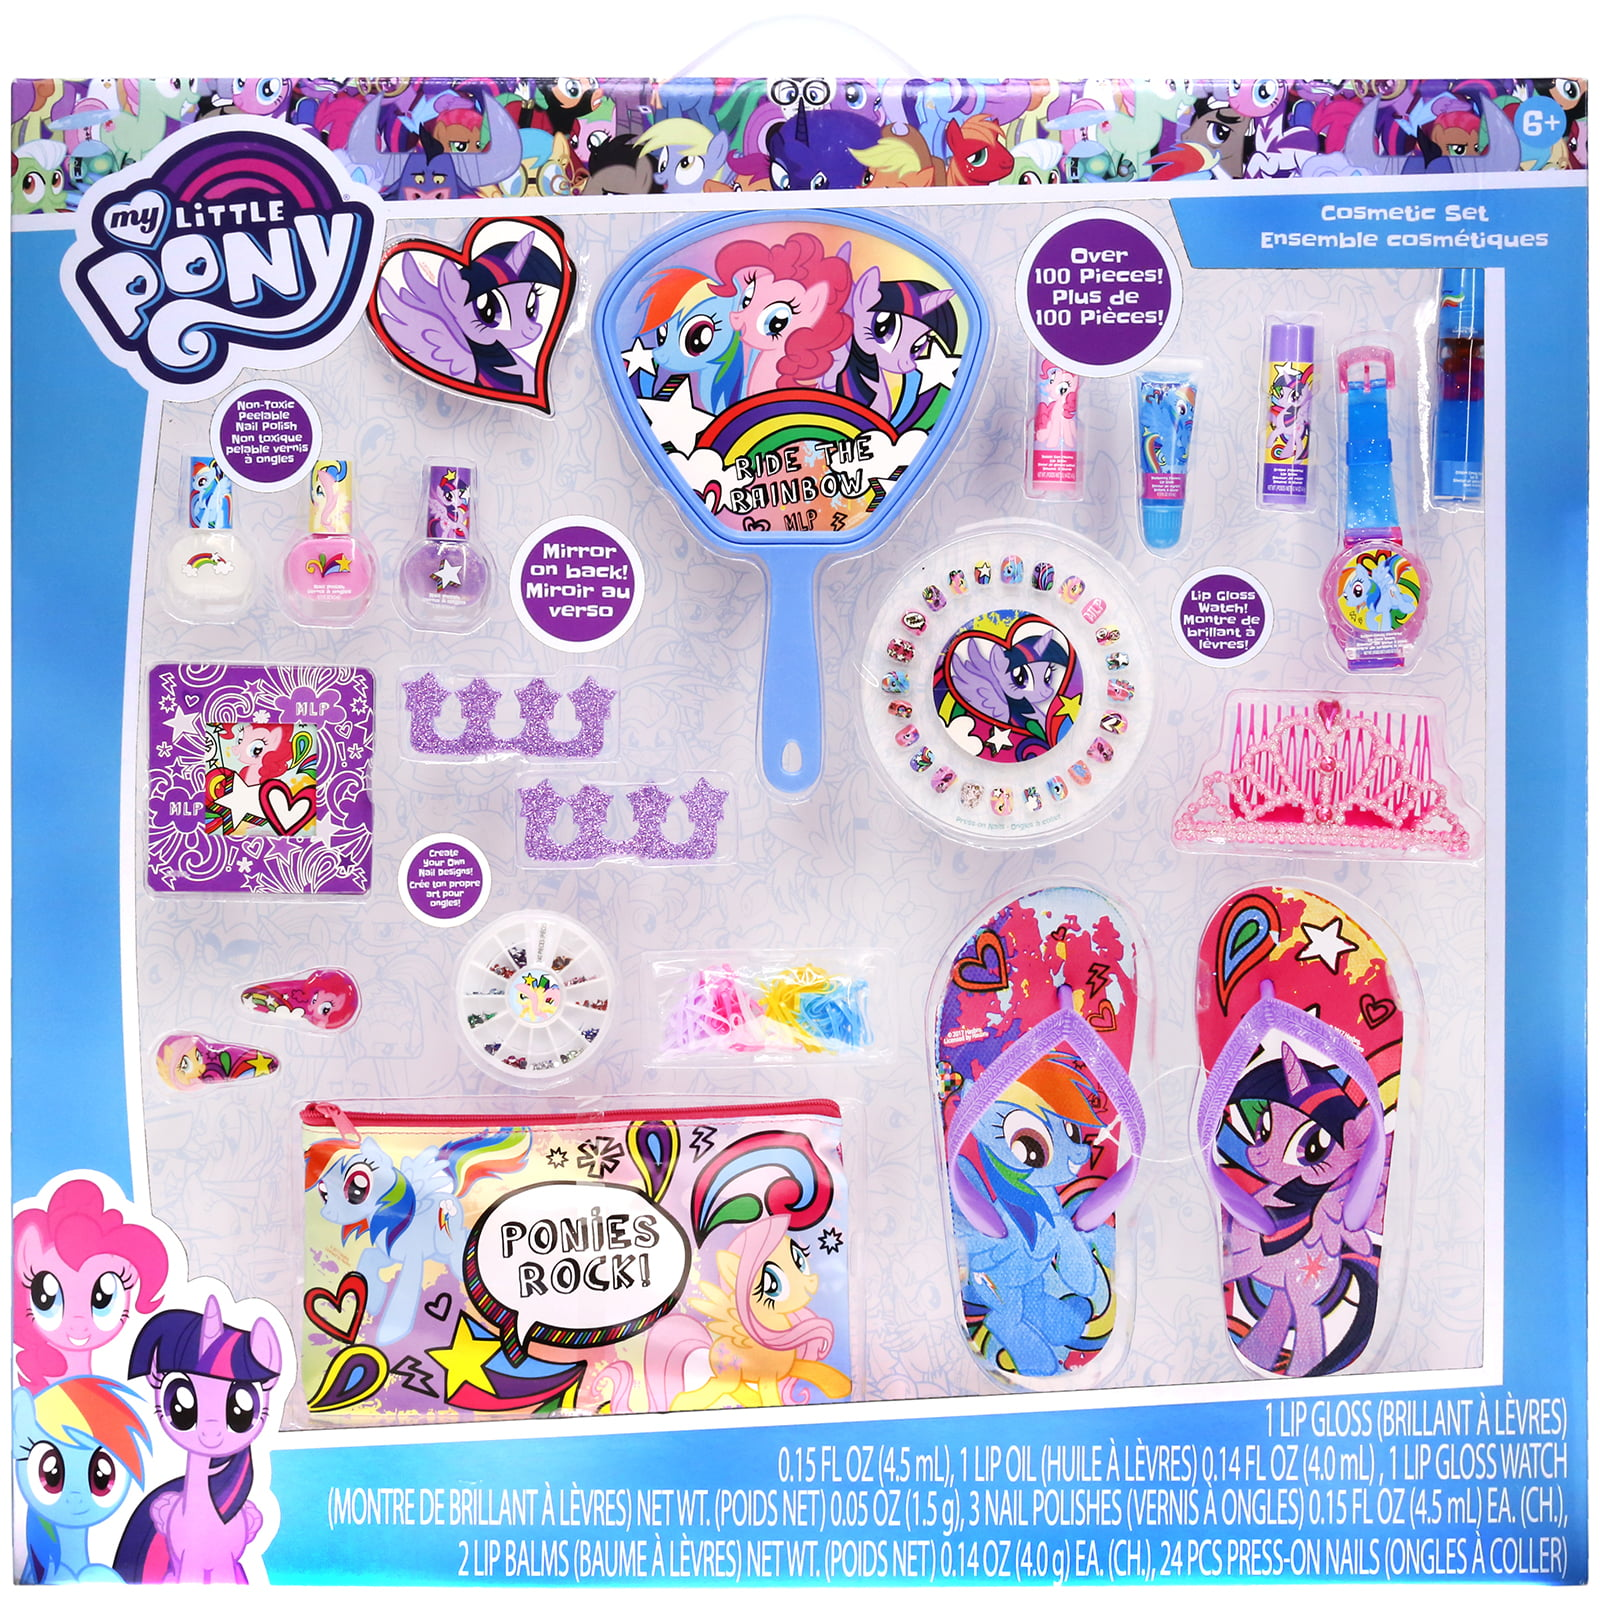 My Little Pony Mega Cosmetic Set by Townley Inc